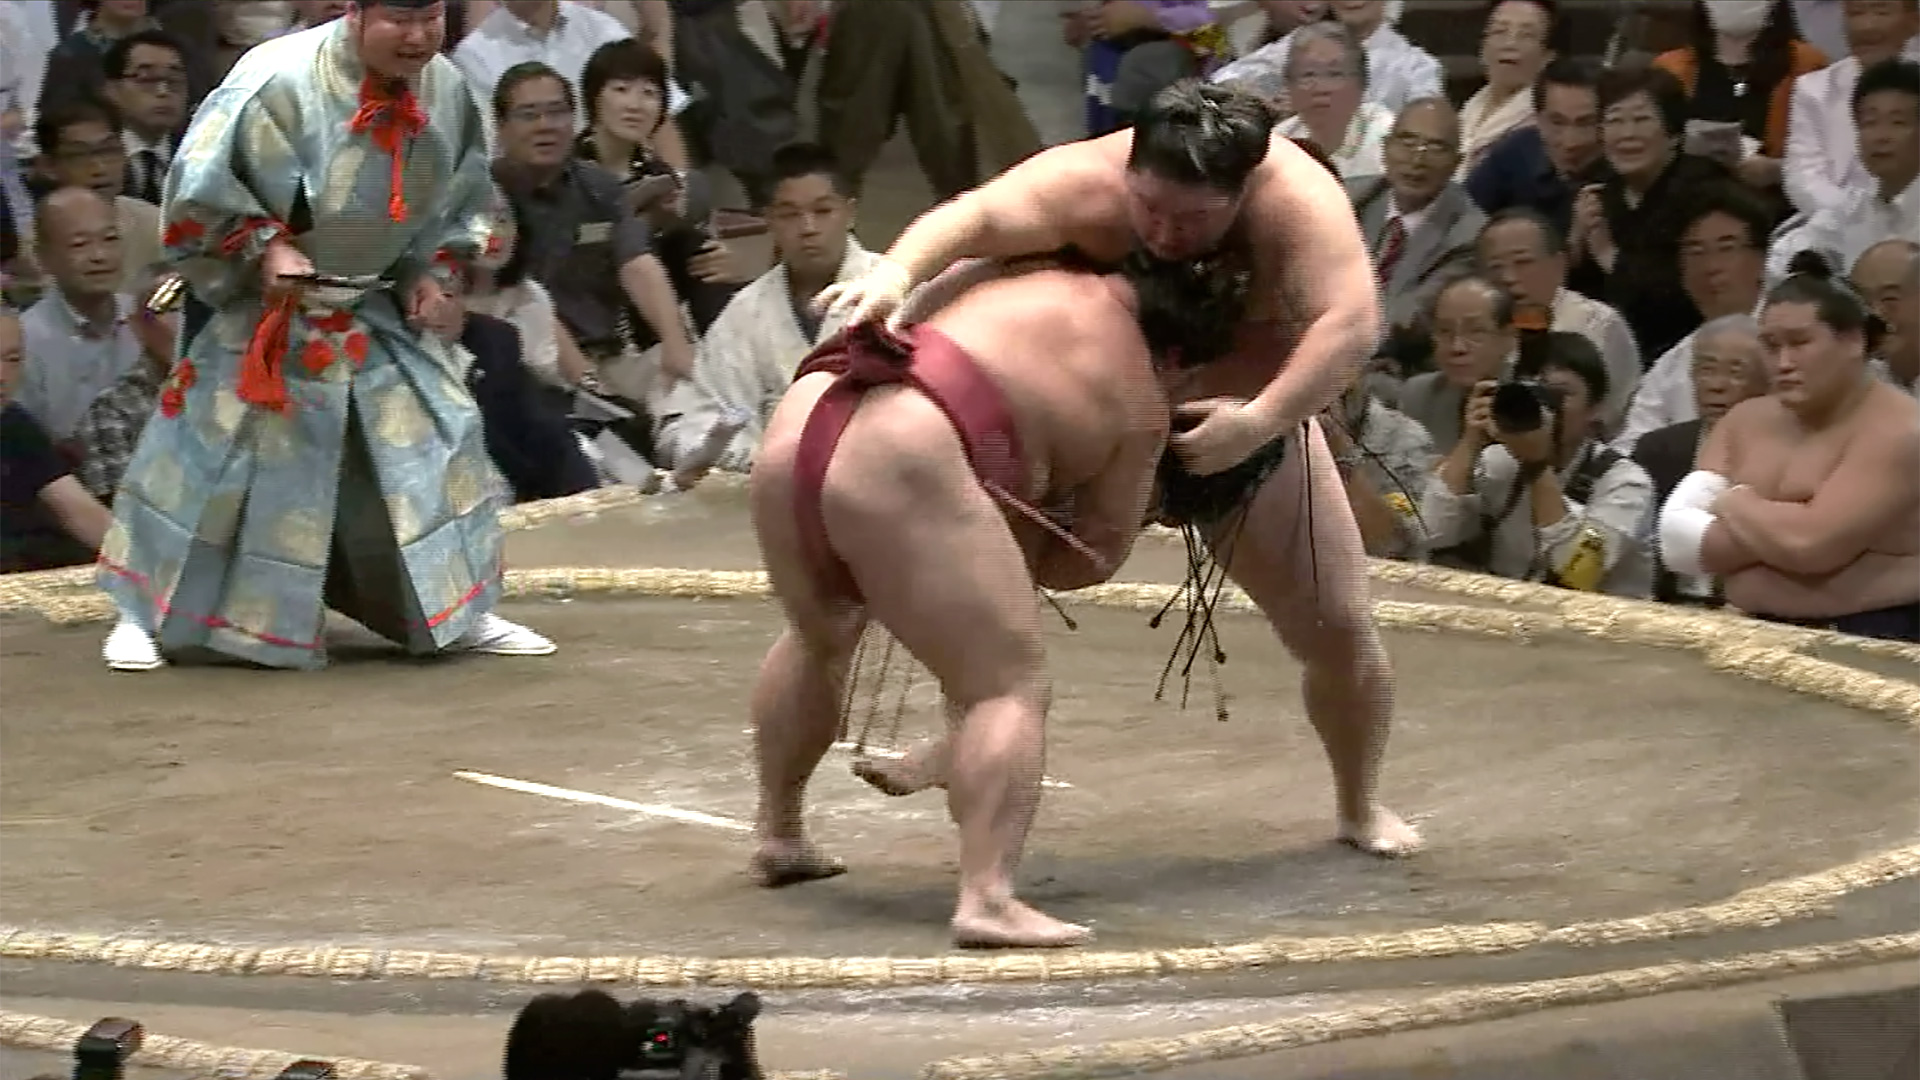 Komatasukui/ Over thigh scooping body drop